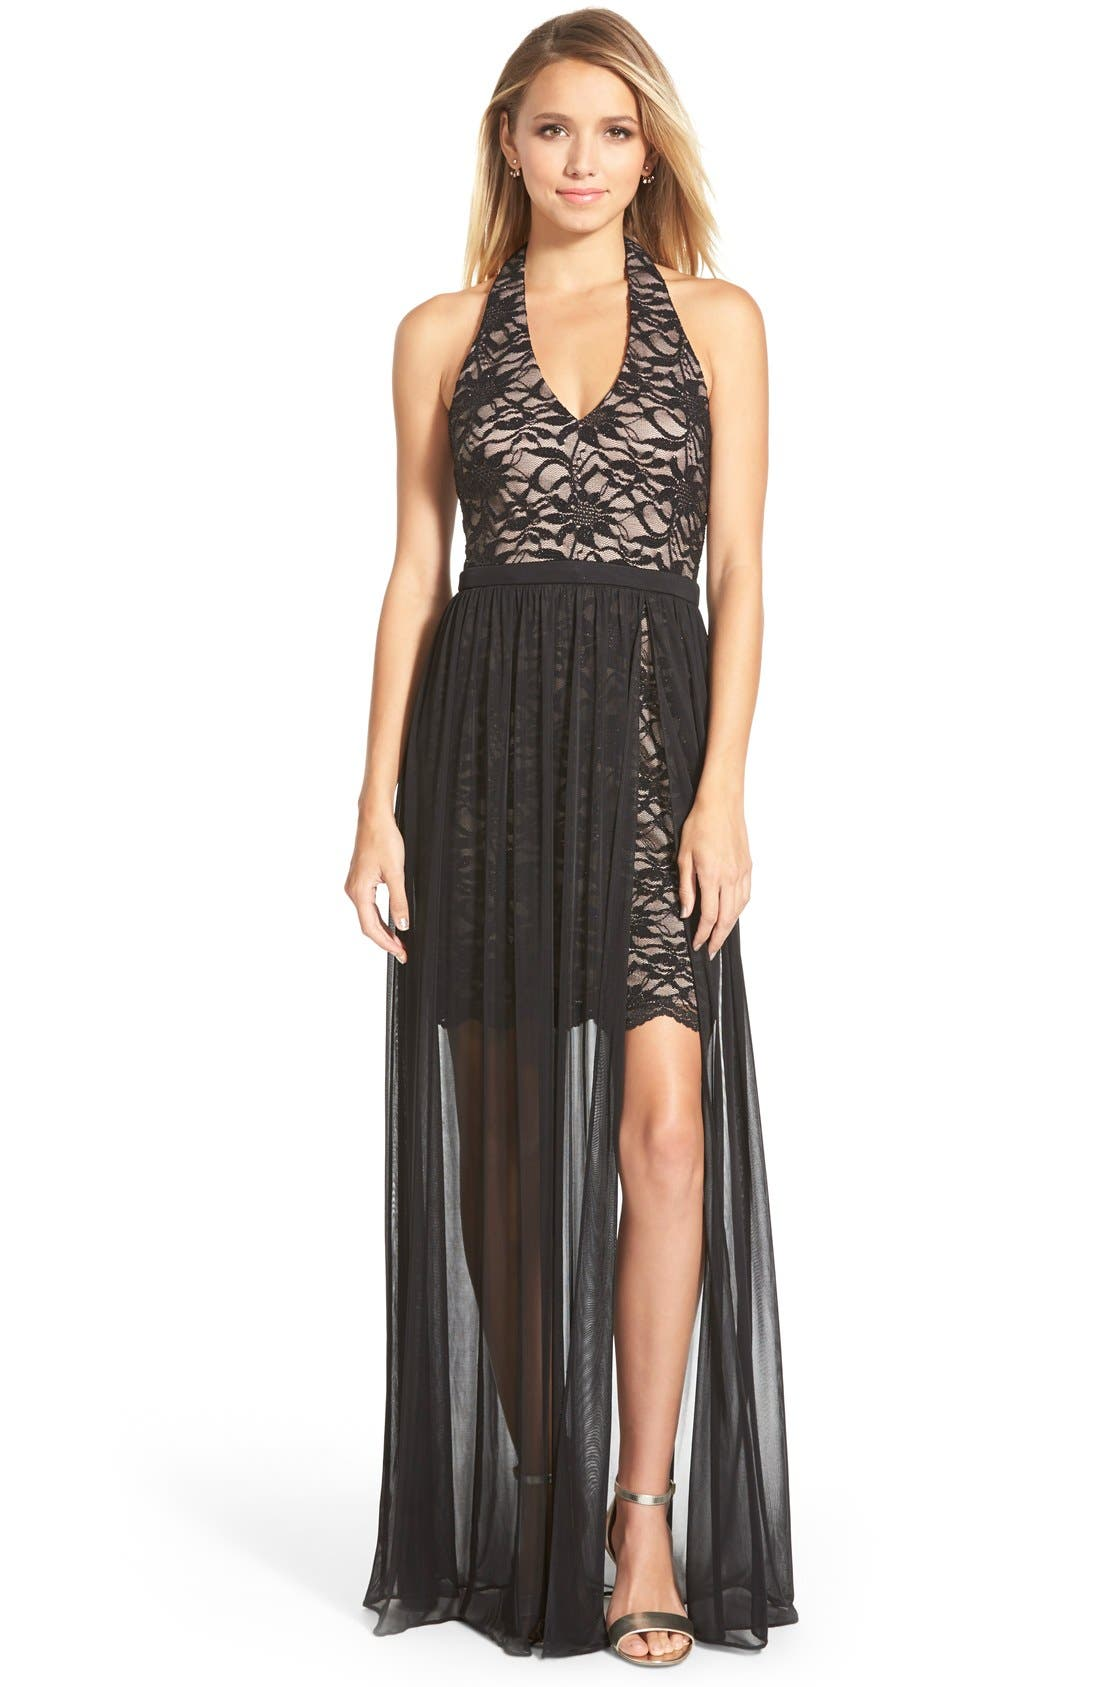 Alternate Image 1 Selected - Morgan & Co. Glitter Lace Halter Gown